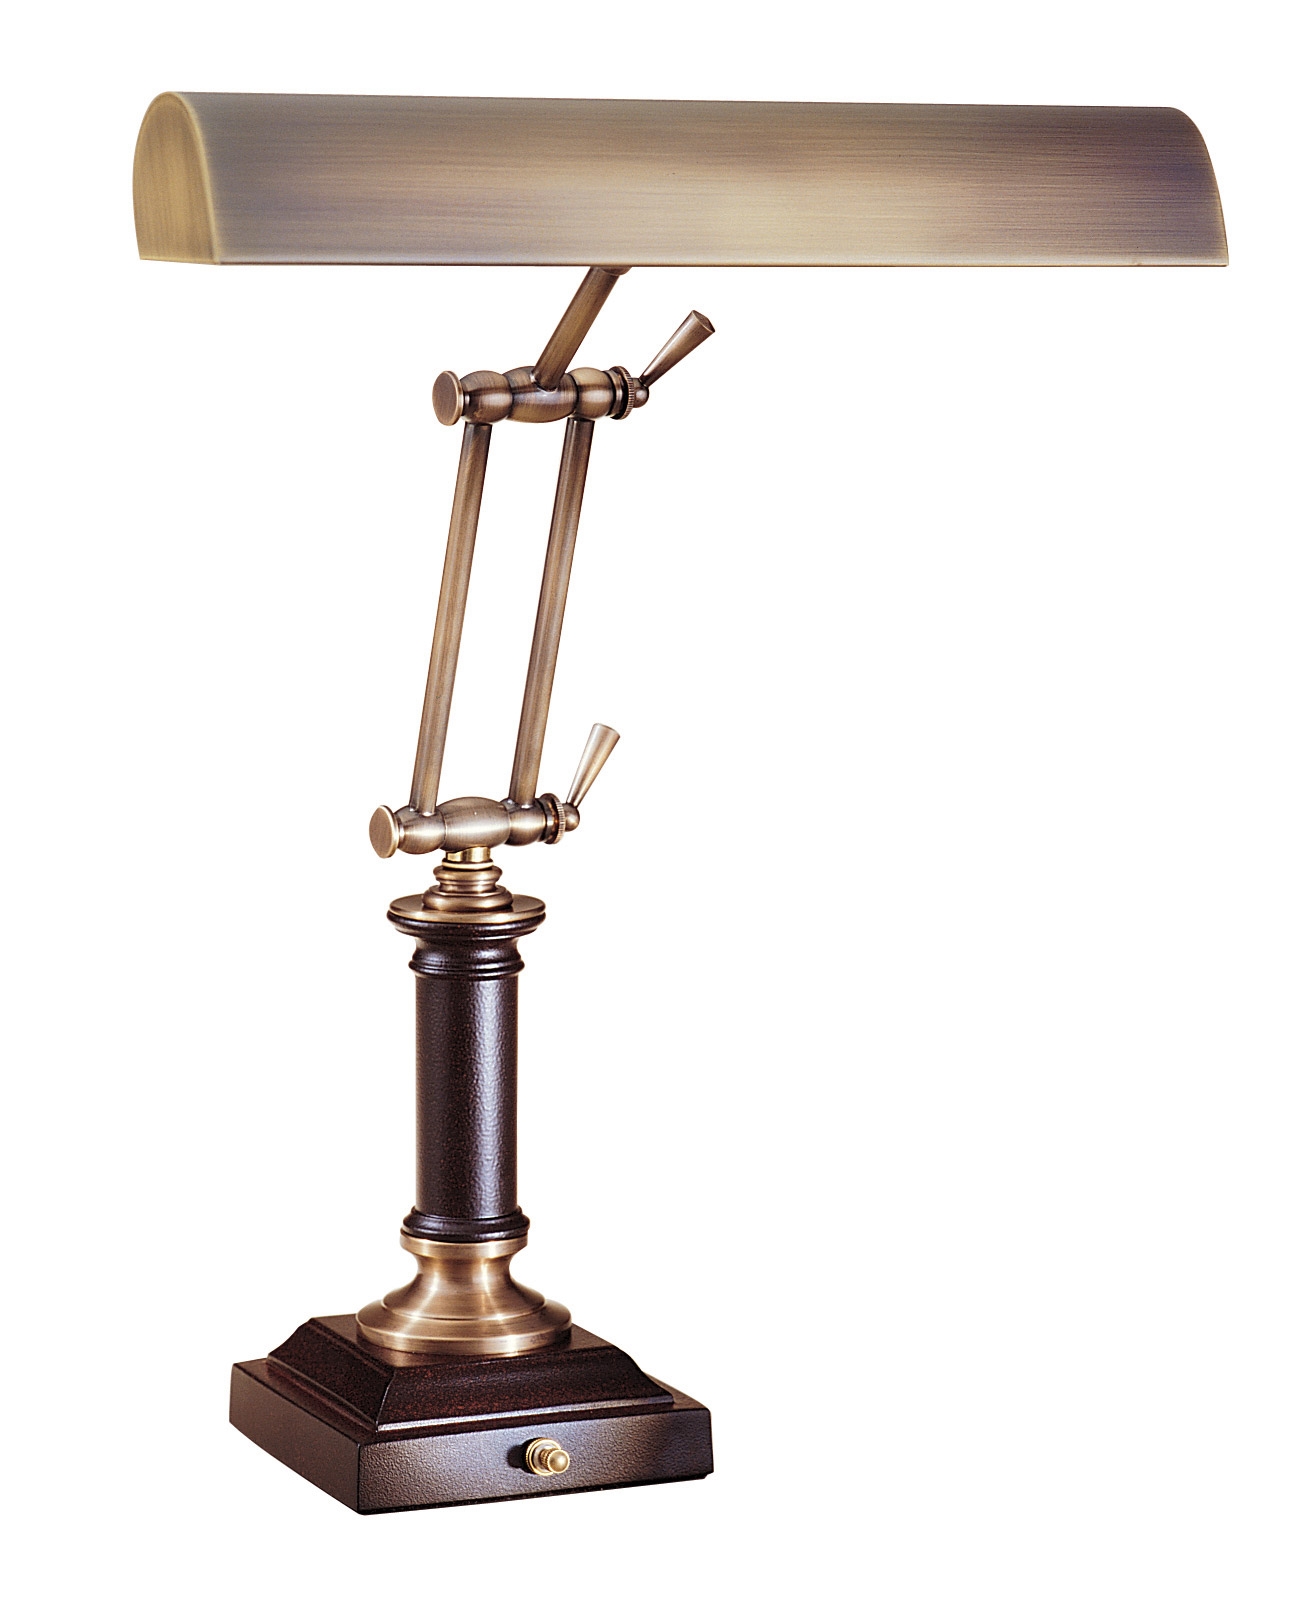 home lamps table lamps piano lamps house of troy p14 233 c71. Black Bedroom Furniture Sets. Home Design Ideas